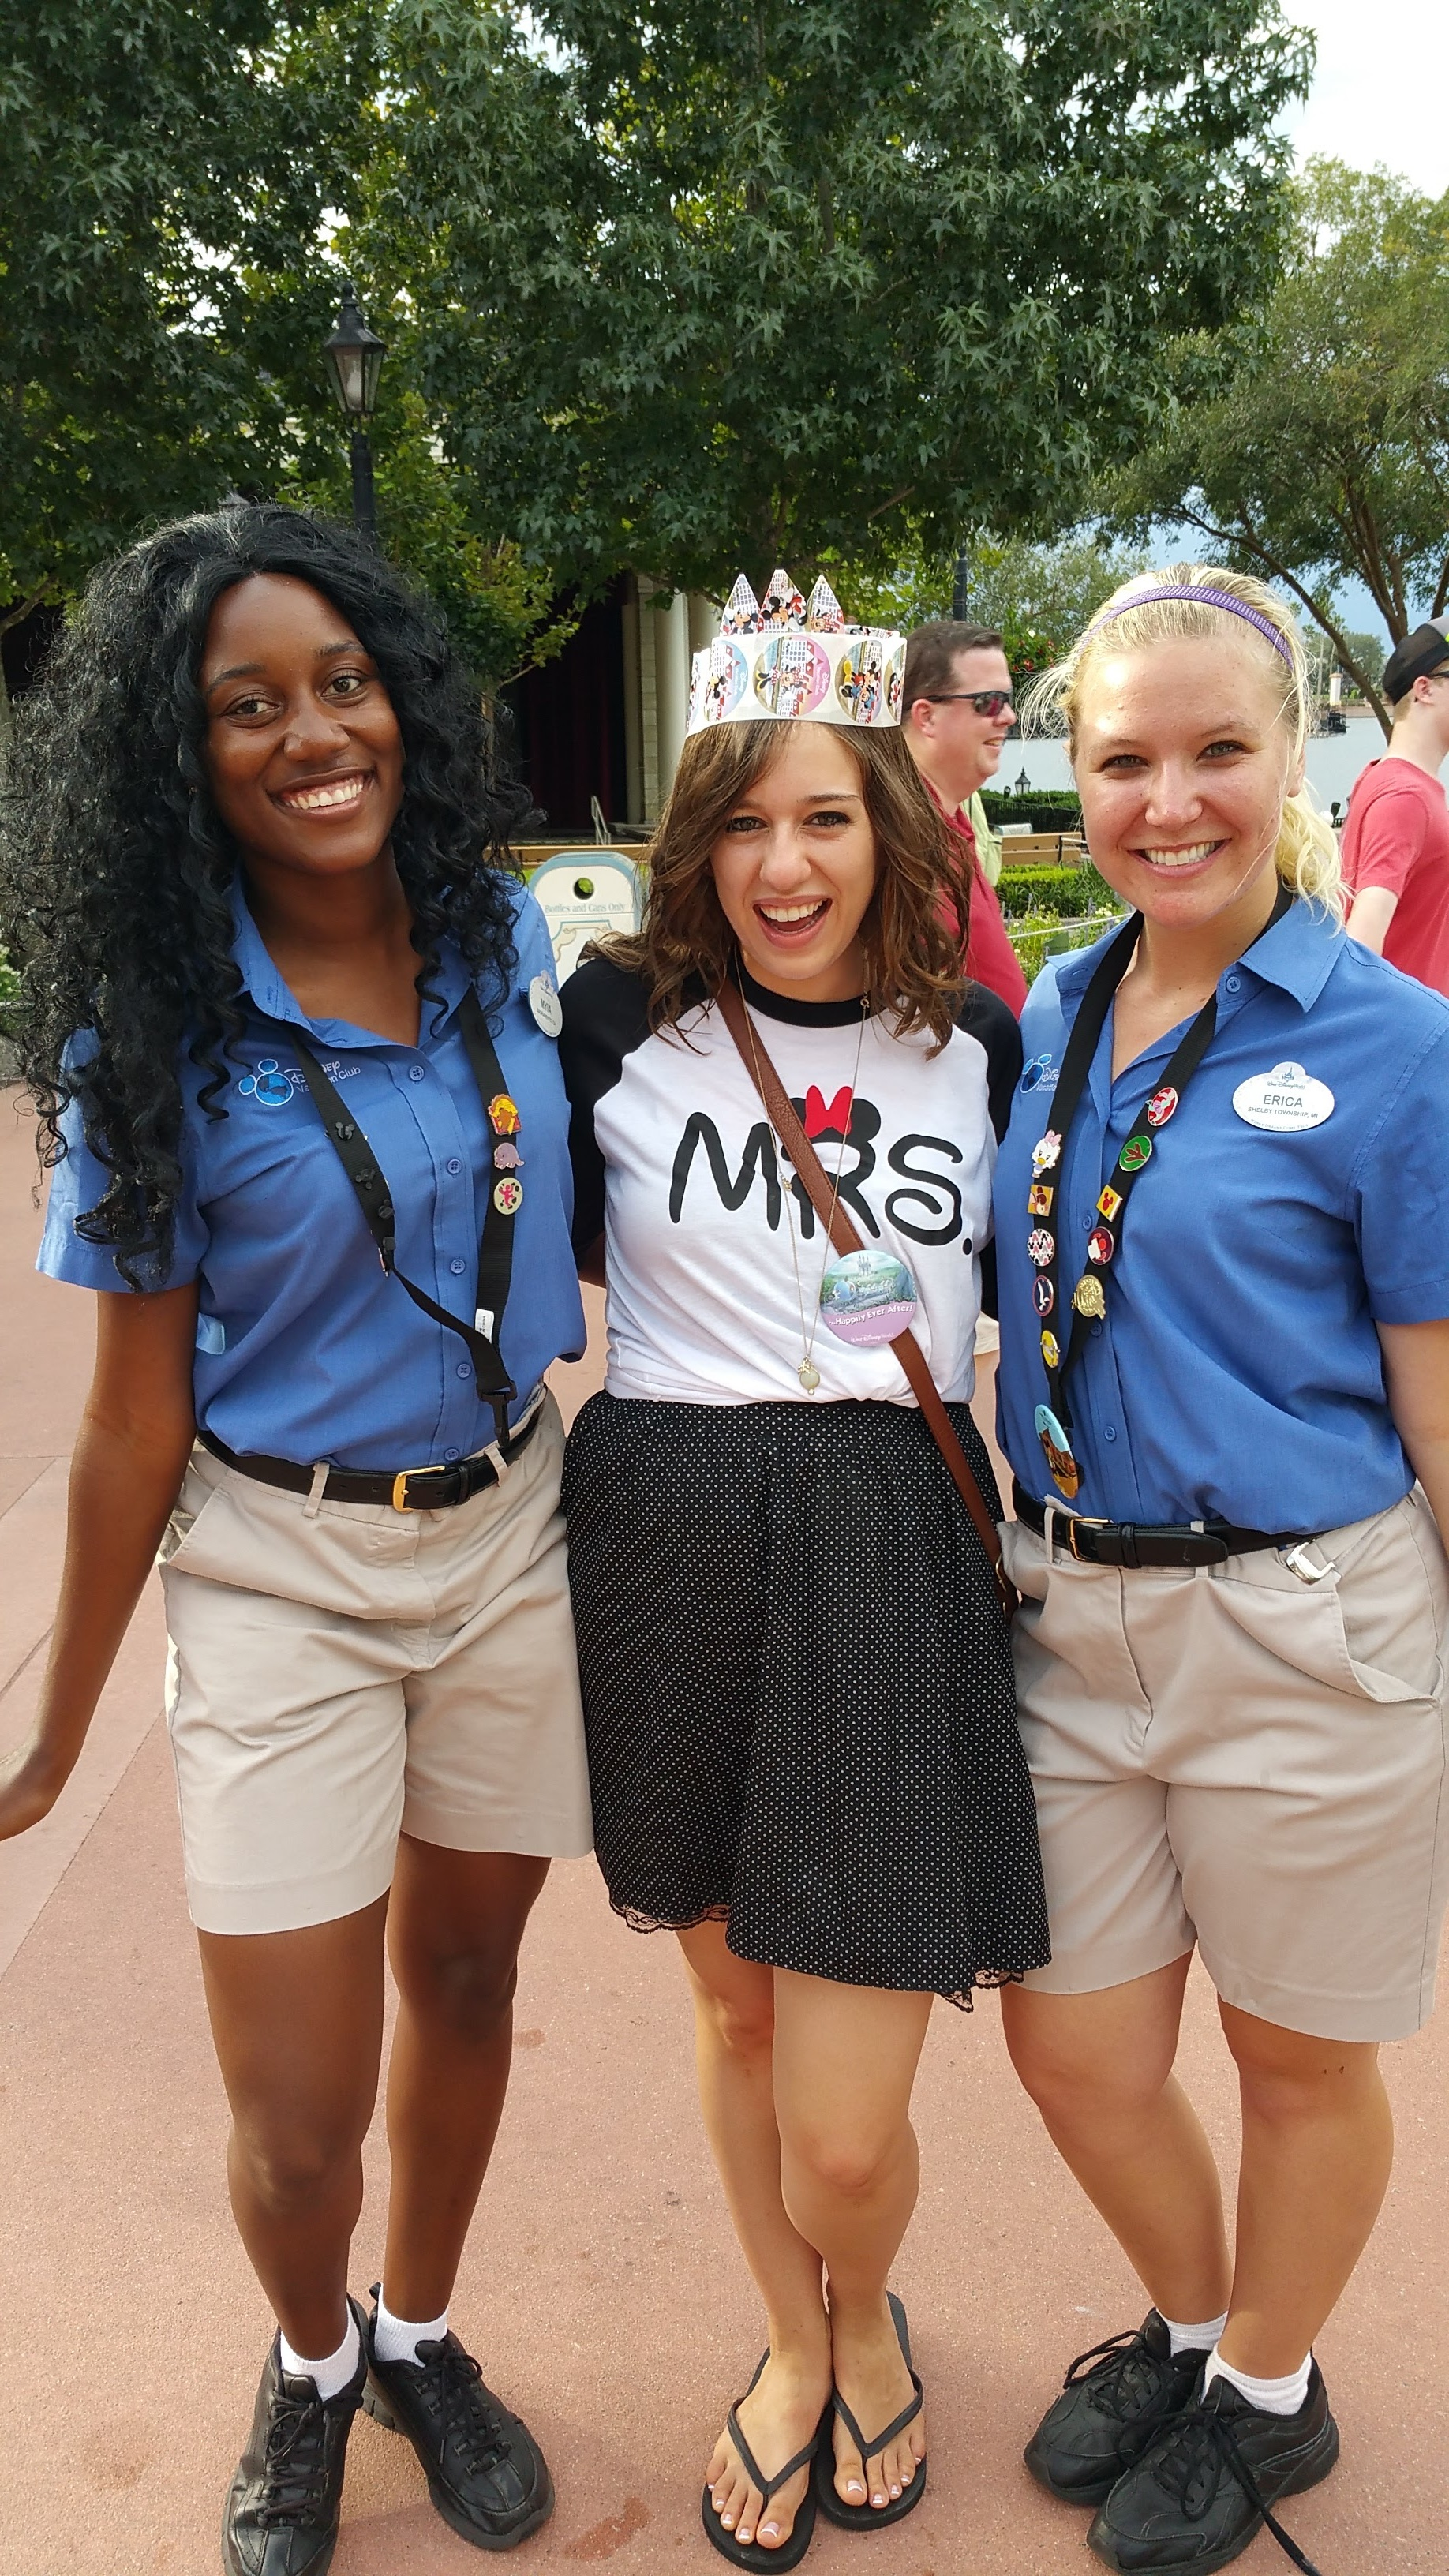 We weren't lying about the crown! This is Myia and Erica! We met them in Epcot and when they learned it was our honeymoon they made this crown for Jenna! We also became best friends with them throughout our stay and keep in touch with them when we're in Florida!